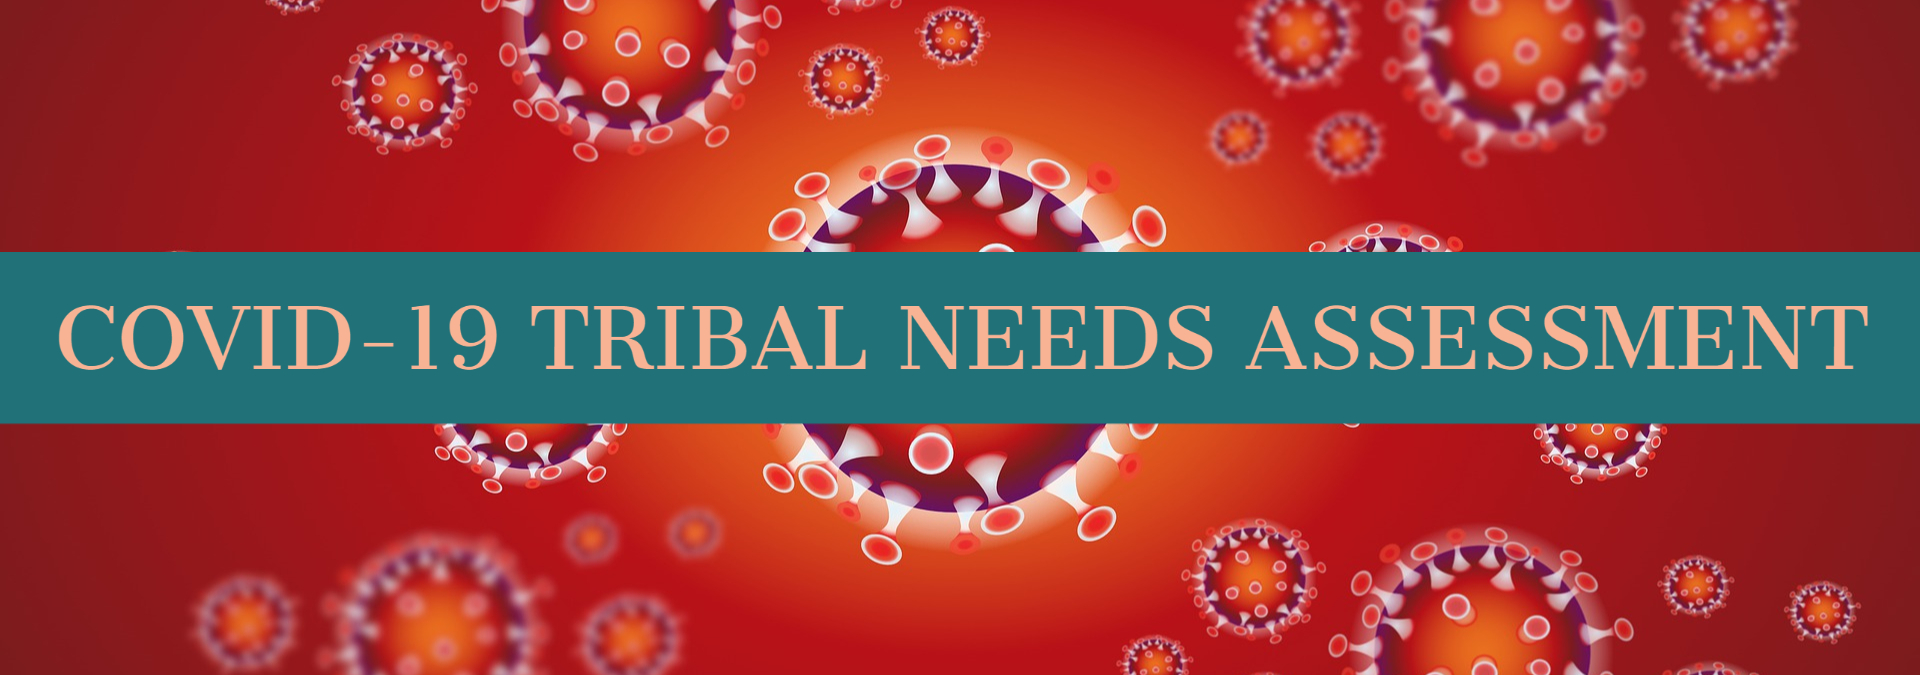 Take our COVID-19 Tribal Needs Assessment